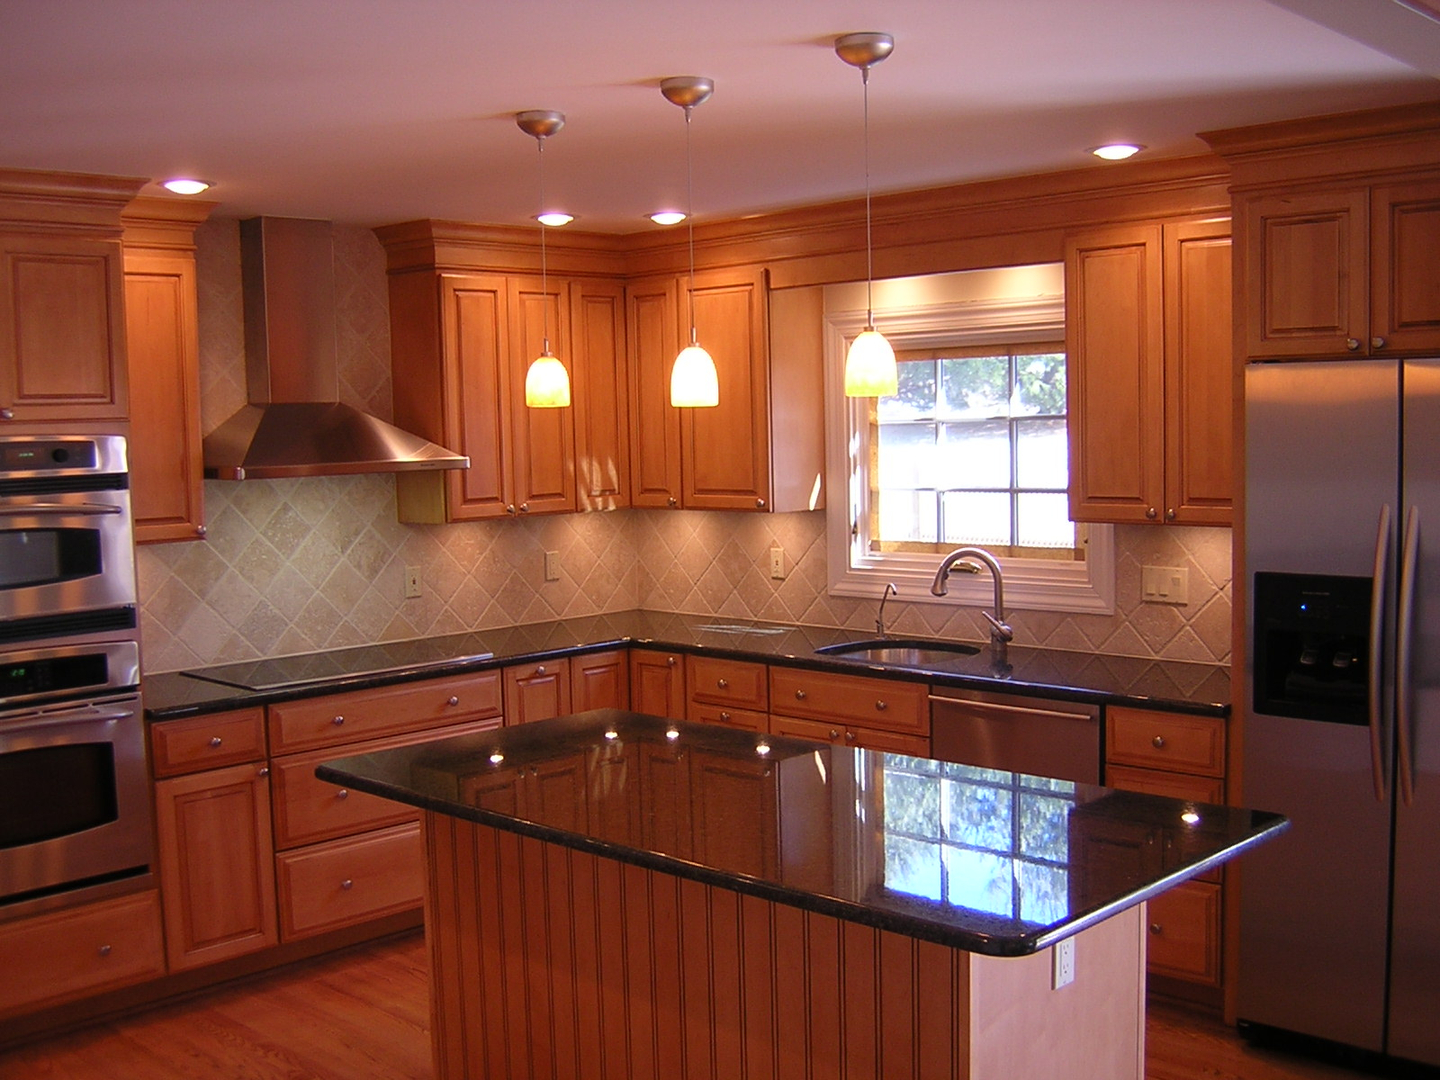 To Remodel A Kitchen Kitchen Remodel Build It Boys Construction Yelm Wa